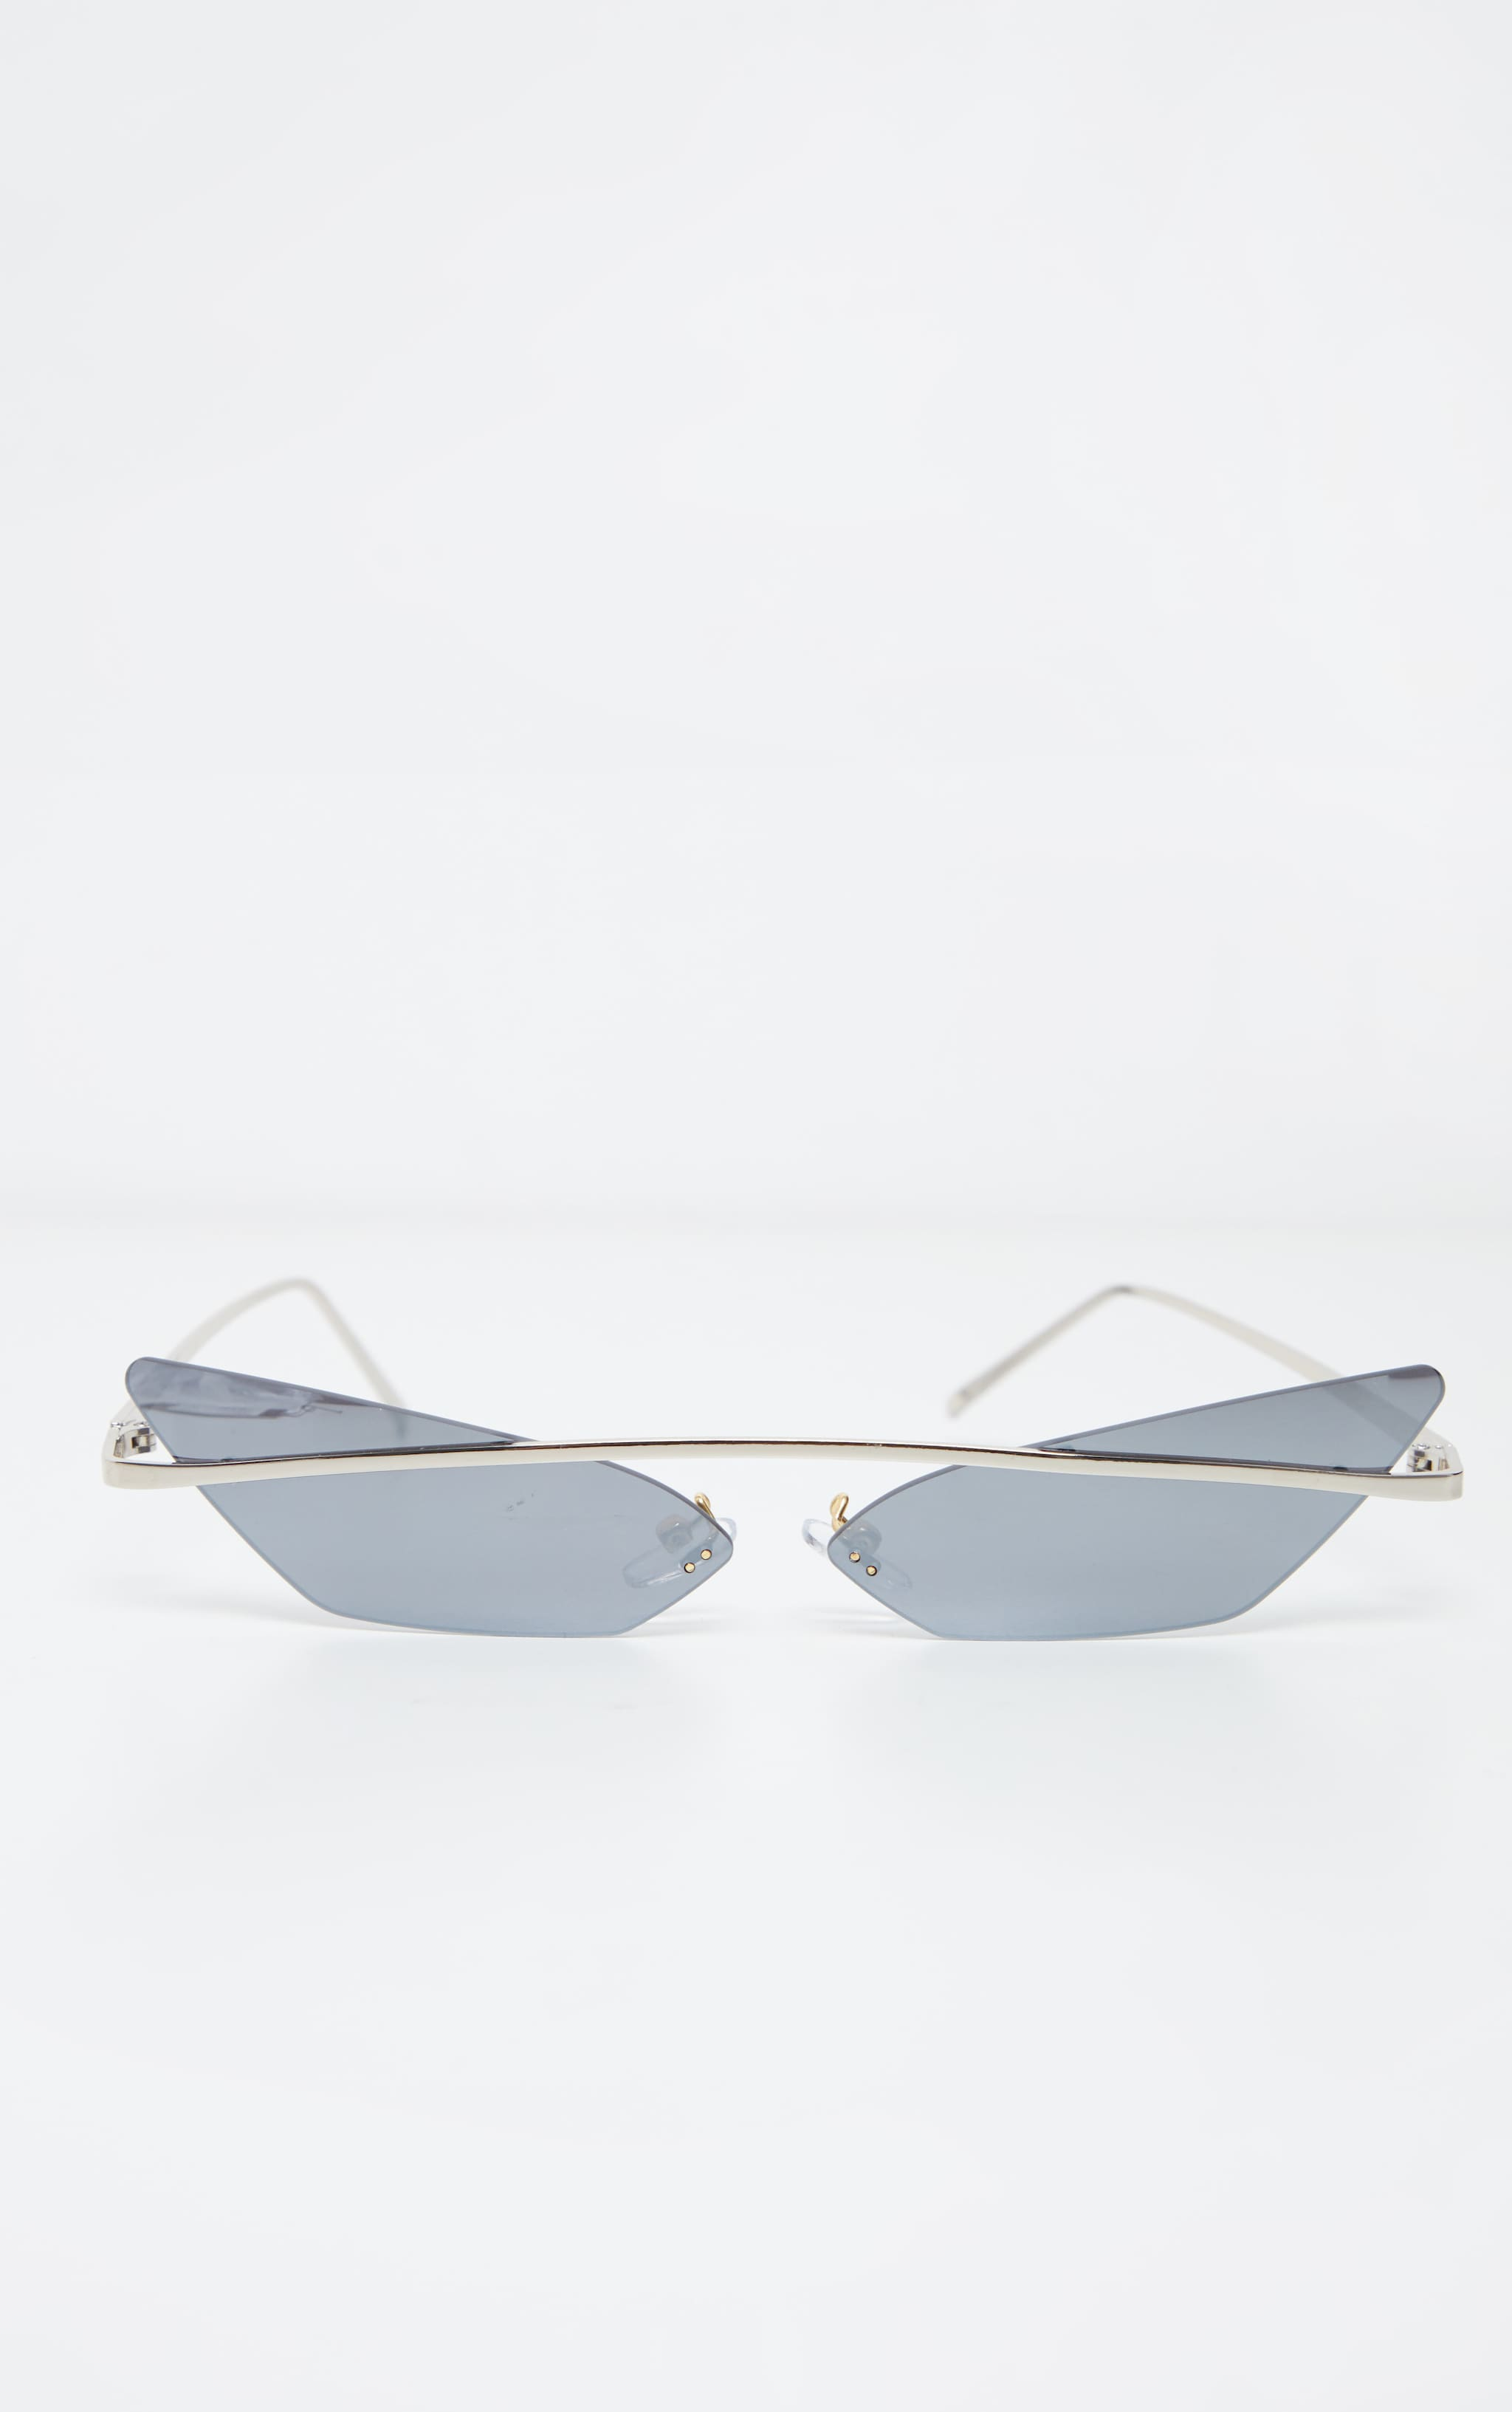 Silver Lens Brow Bar Cat Eye Sunglasses 2